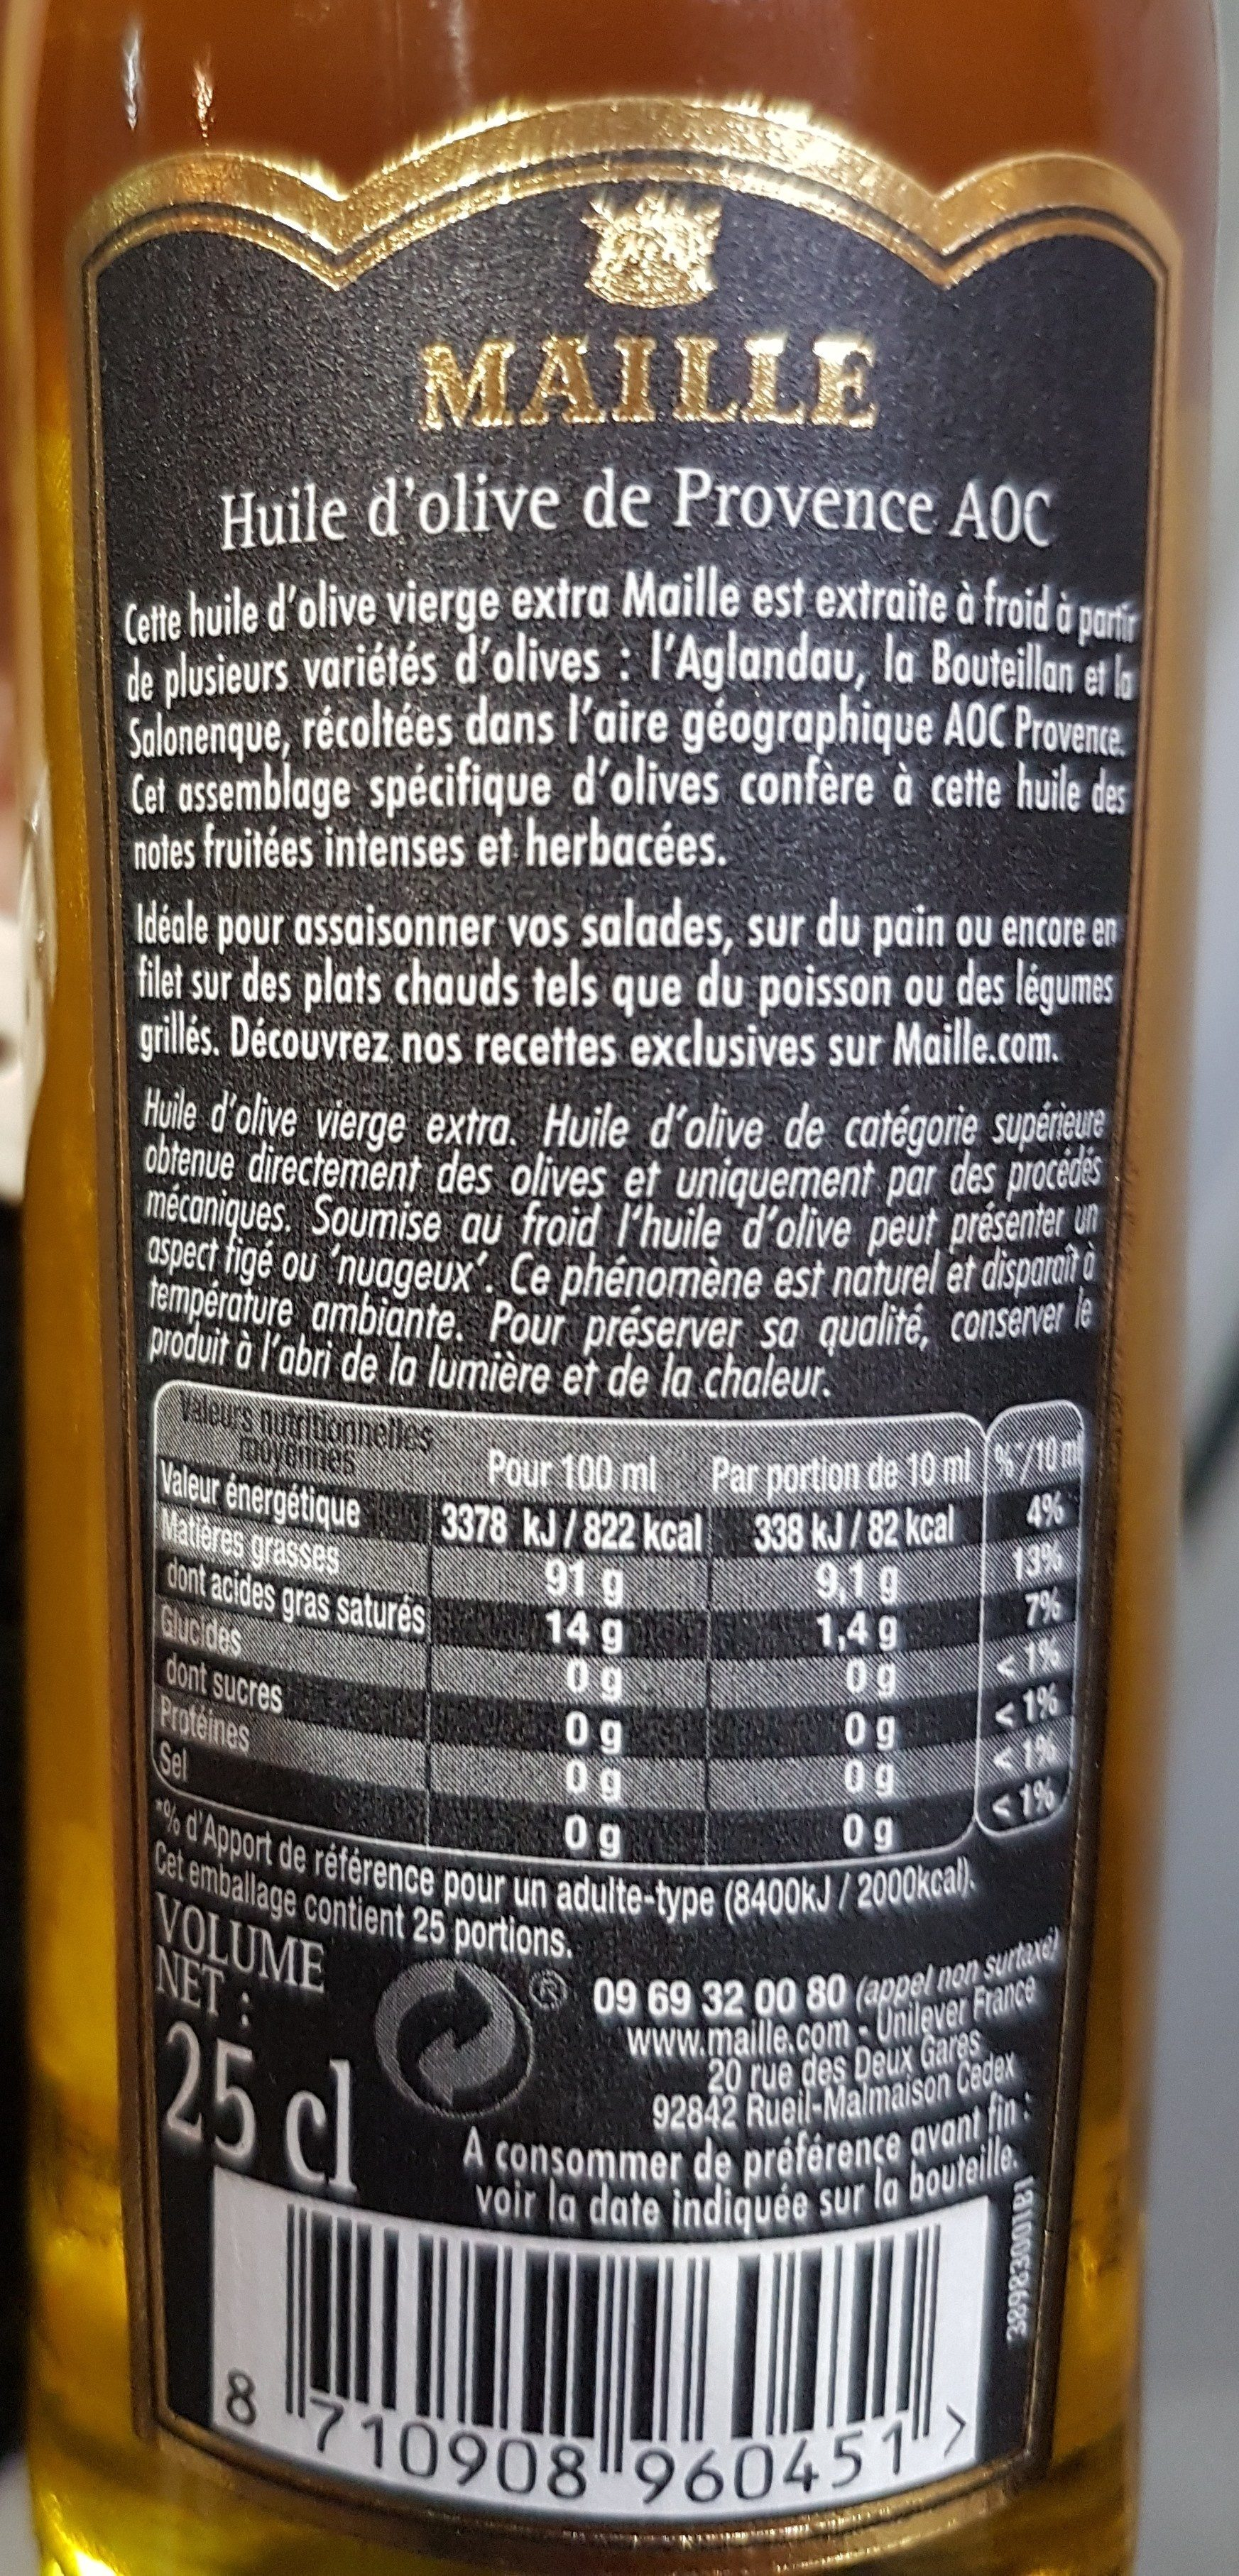 Huile d'olive de Provence AOC vierge extra - Ingredients